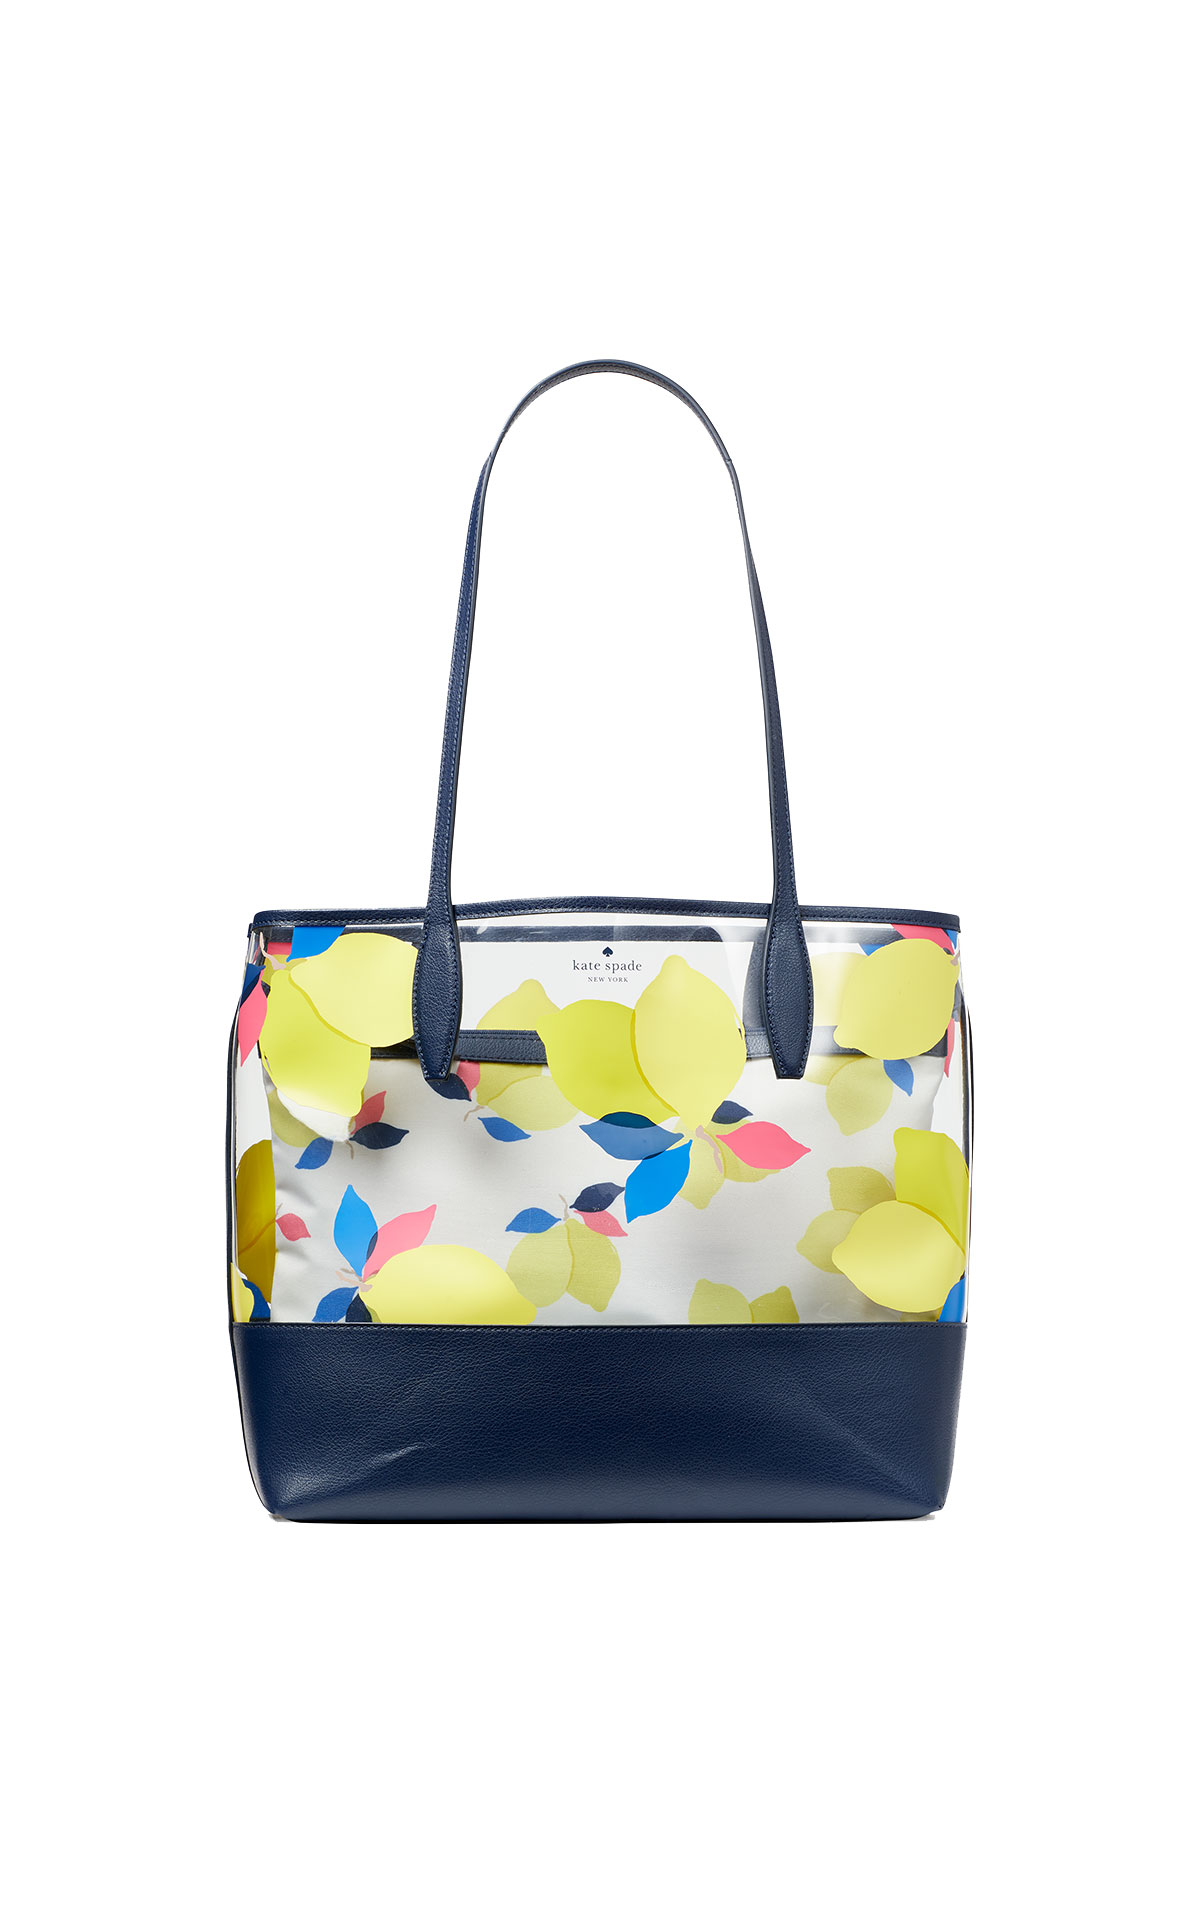 kate spade new york Ash see-through lemon zest large triple compartment tote from Bicester Village